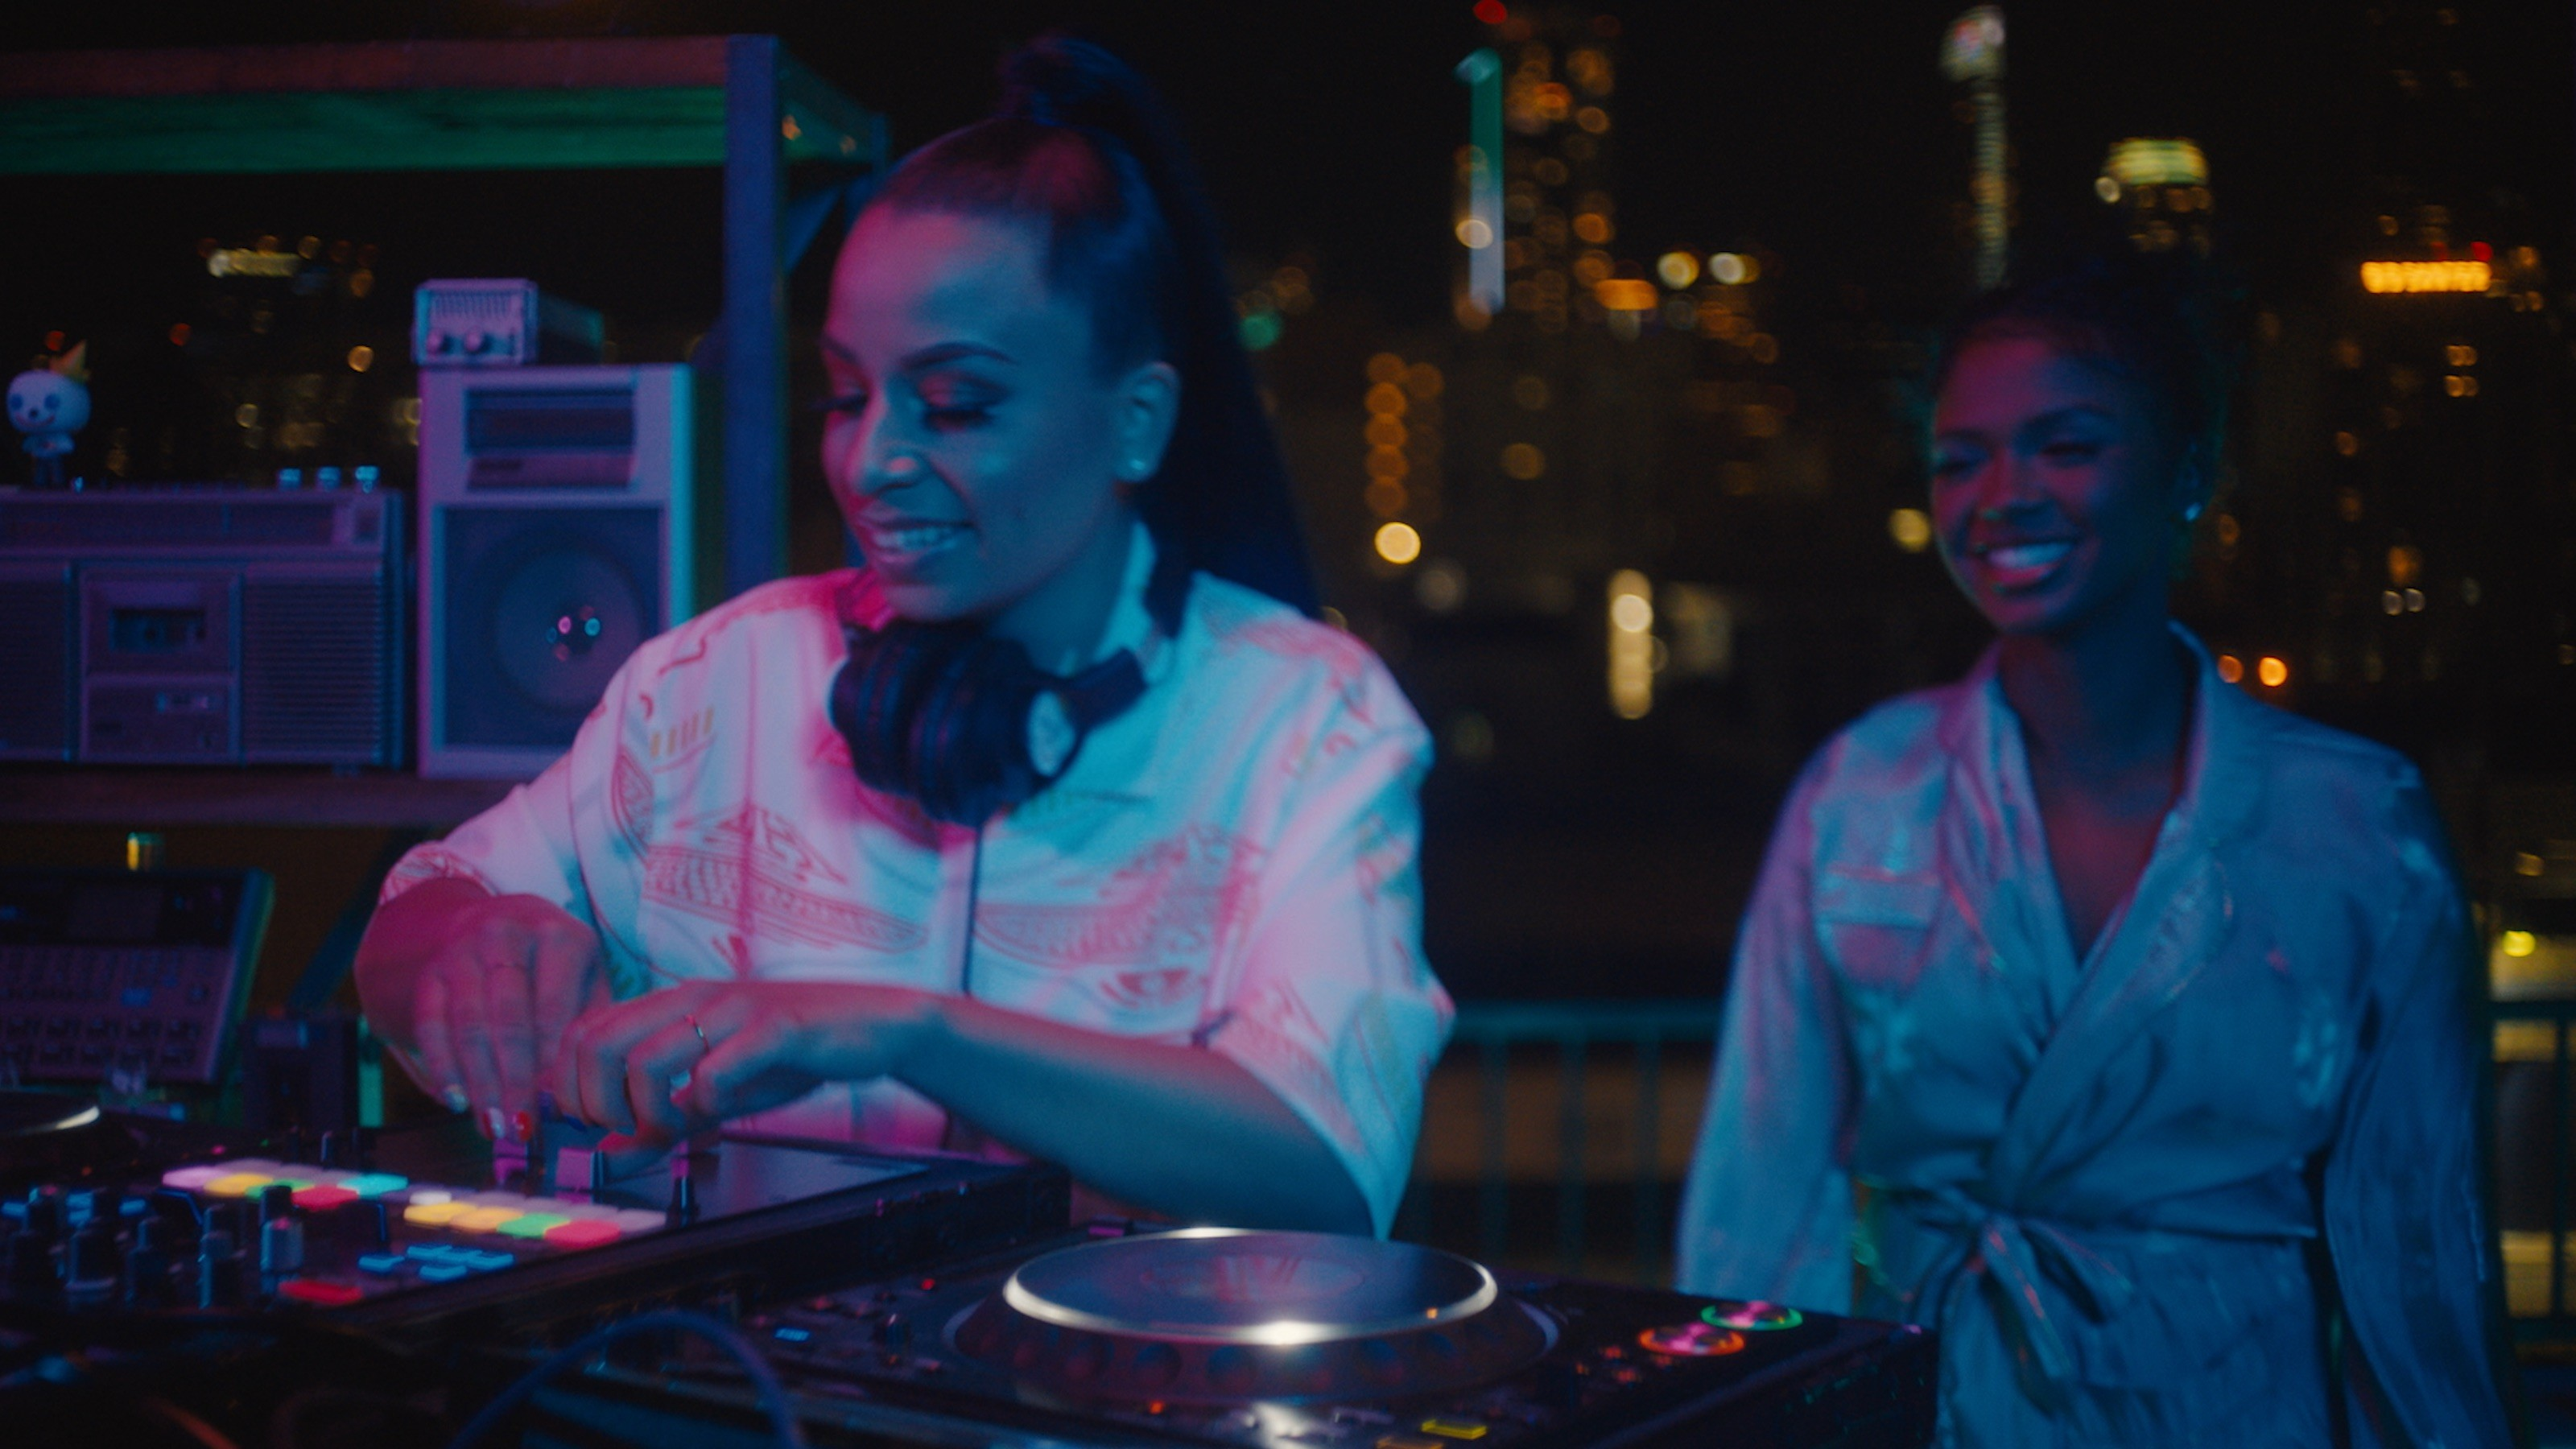 Watch: Billboard Launches New DJ-Focused Series 'Mash Up the Charts'